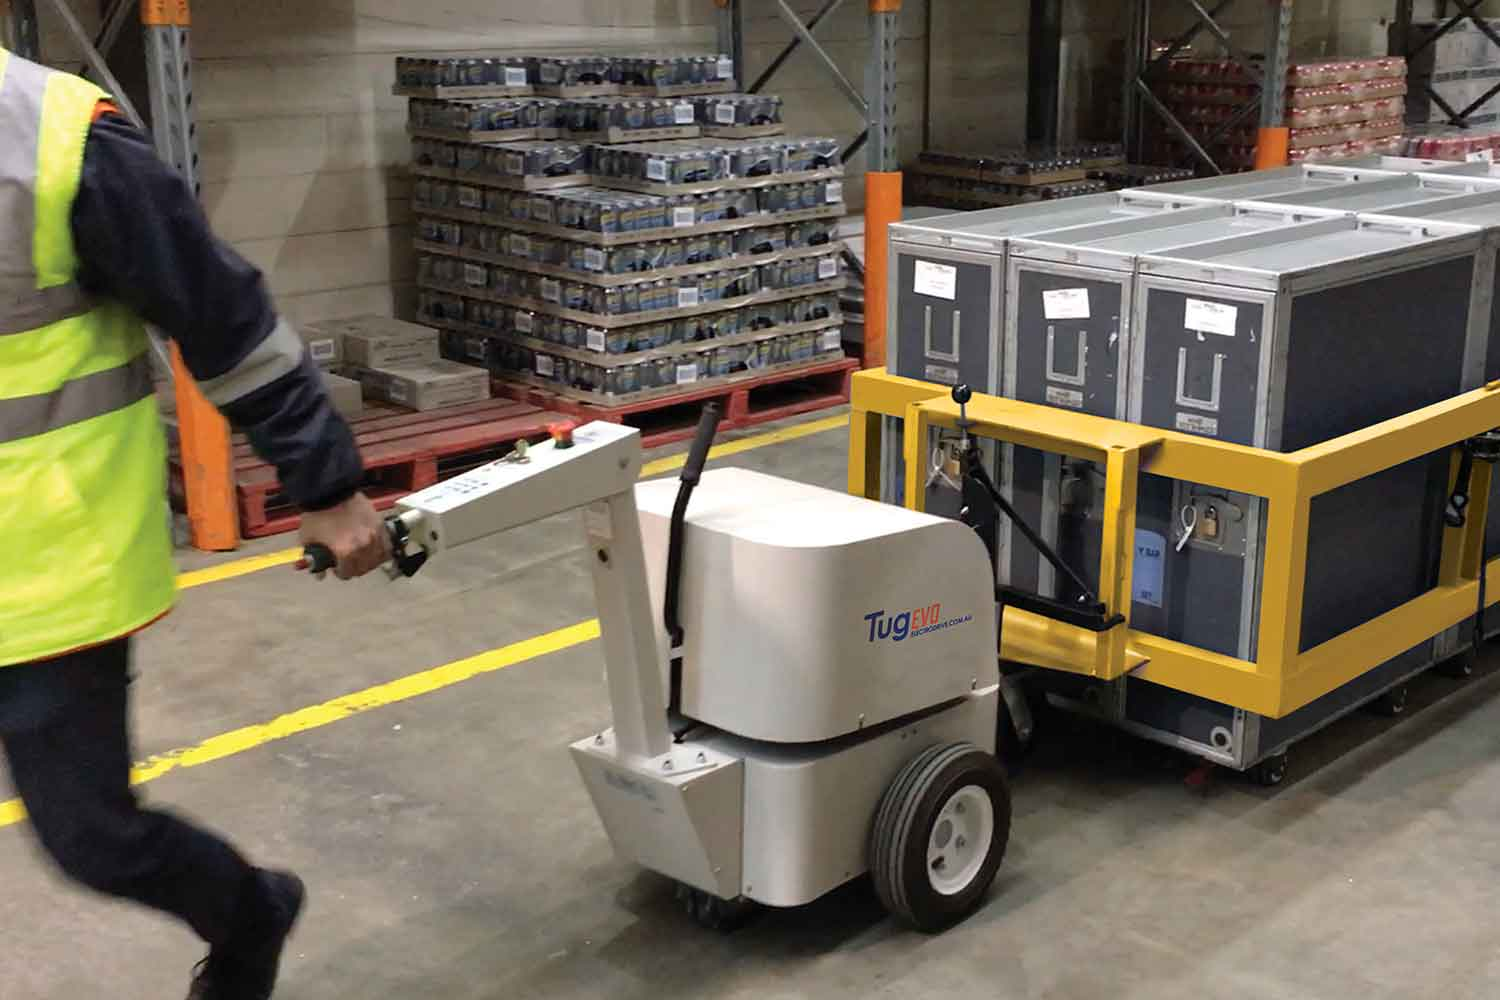 Electrodrive's Tug Evo moving an airline cart